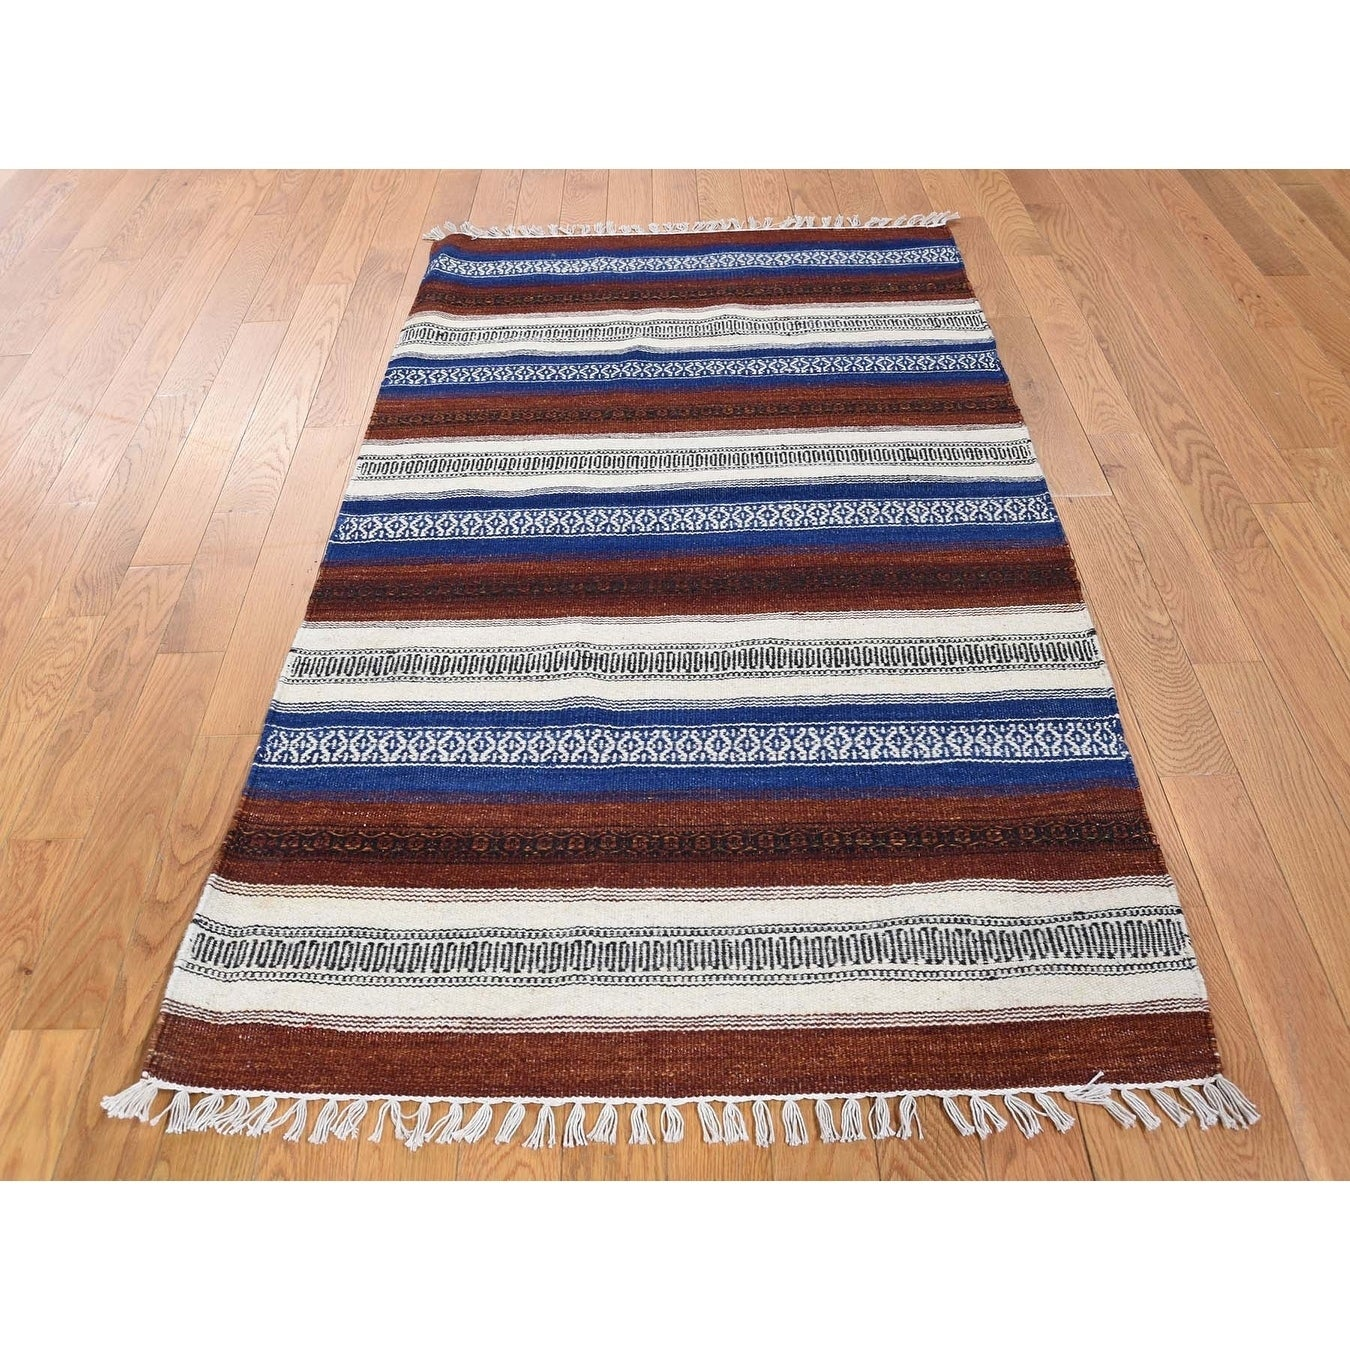 Hand Knotted Multicolored Flat Weave with Wool Oriental Rug - 3 x 52